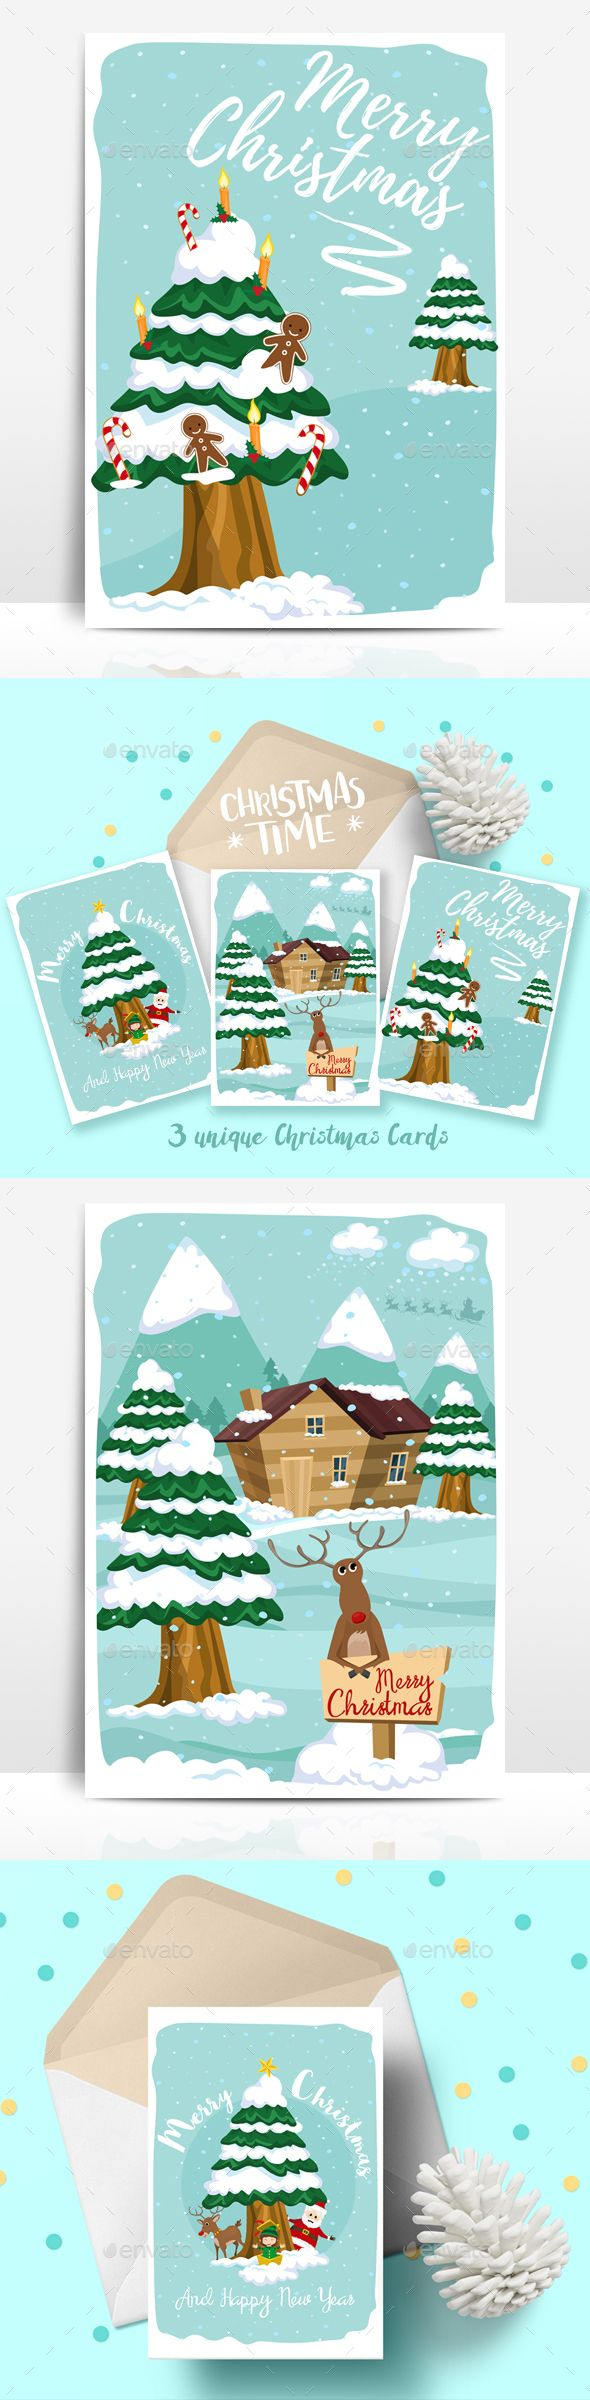 The 13 best images about christmas card on pinterest christmas christmas cards kristyandbryce Image collections